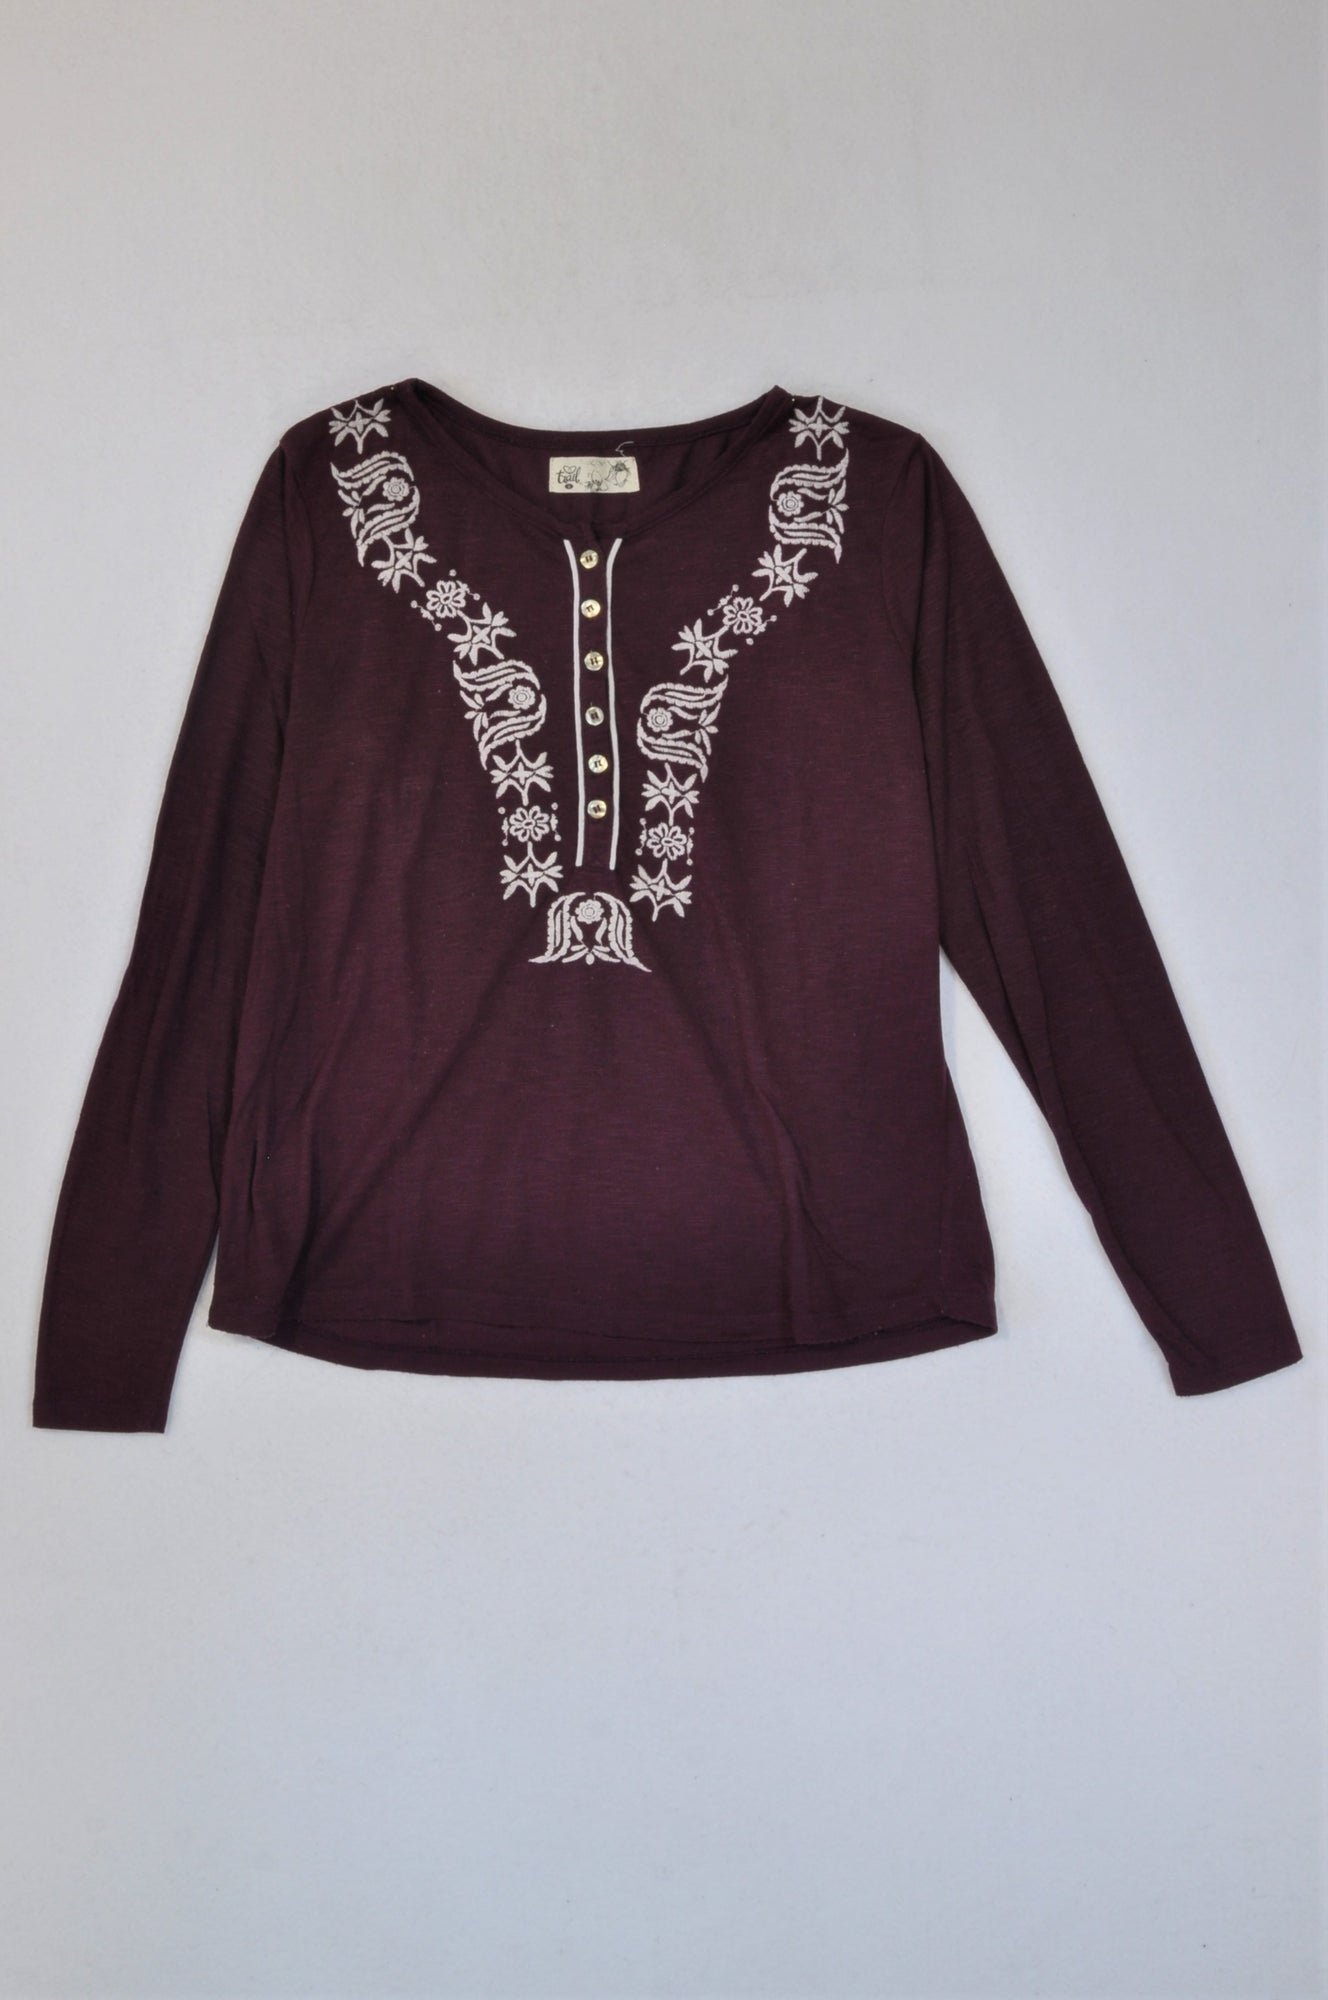 Trail Maroon White Embroidered Pattern Long Sleeve T-shirt Women Size 14